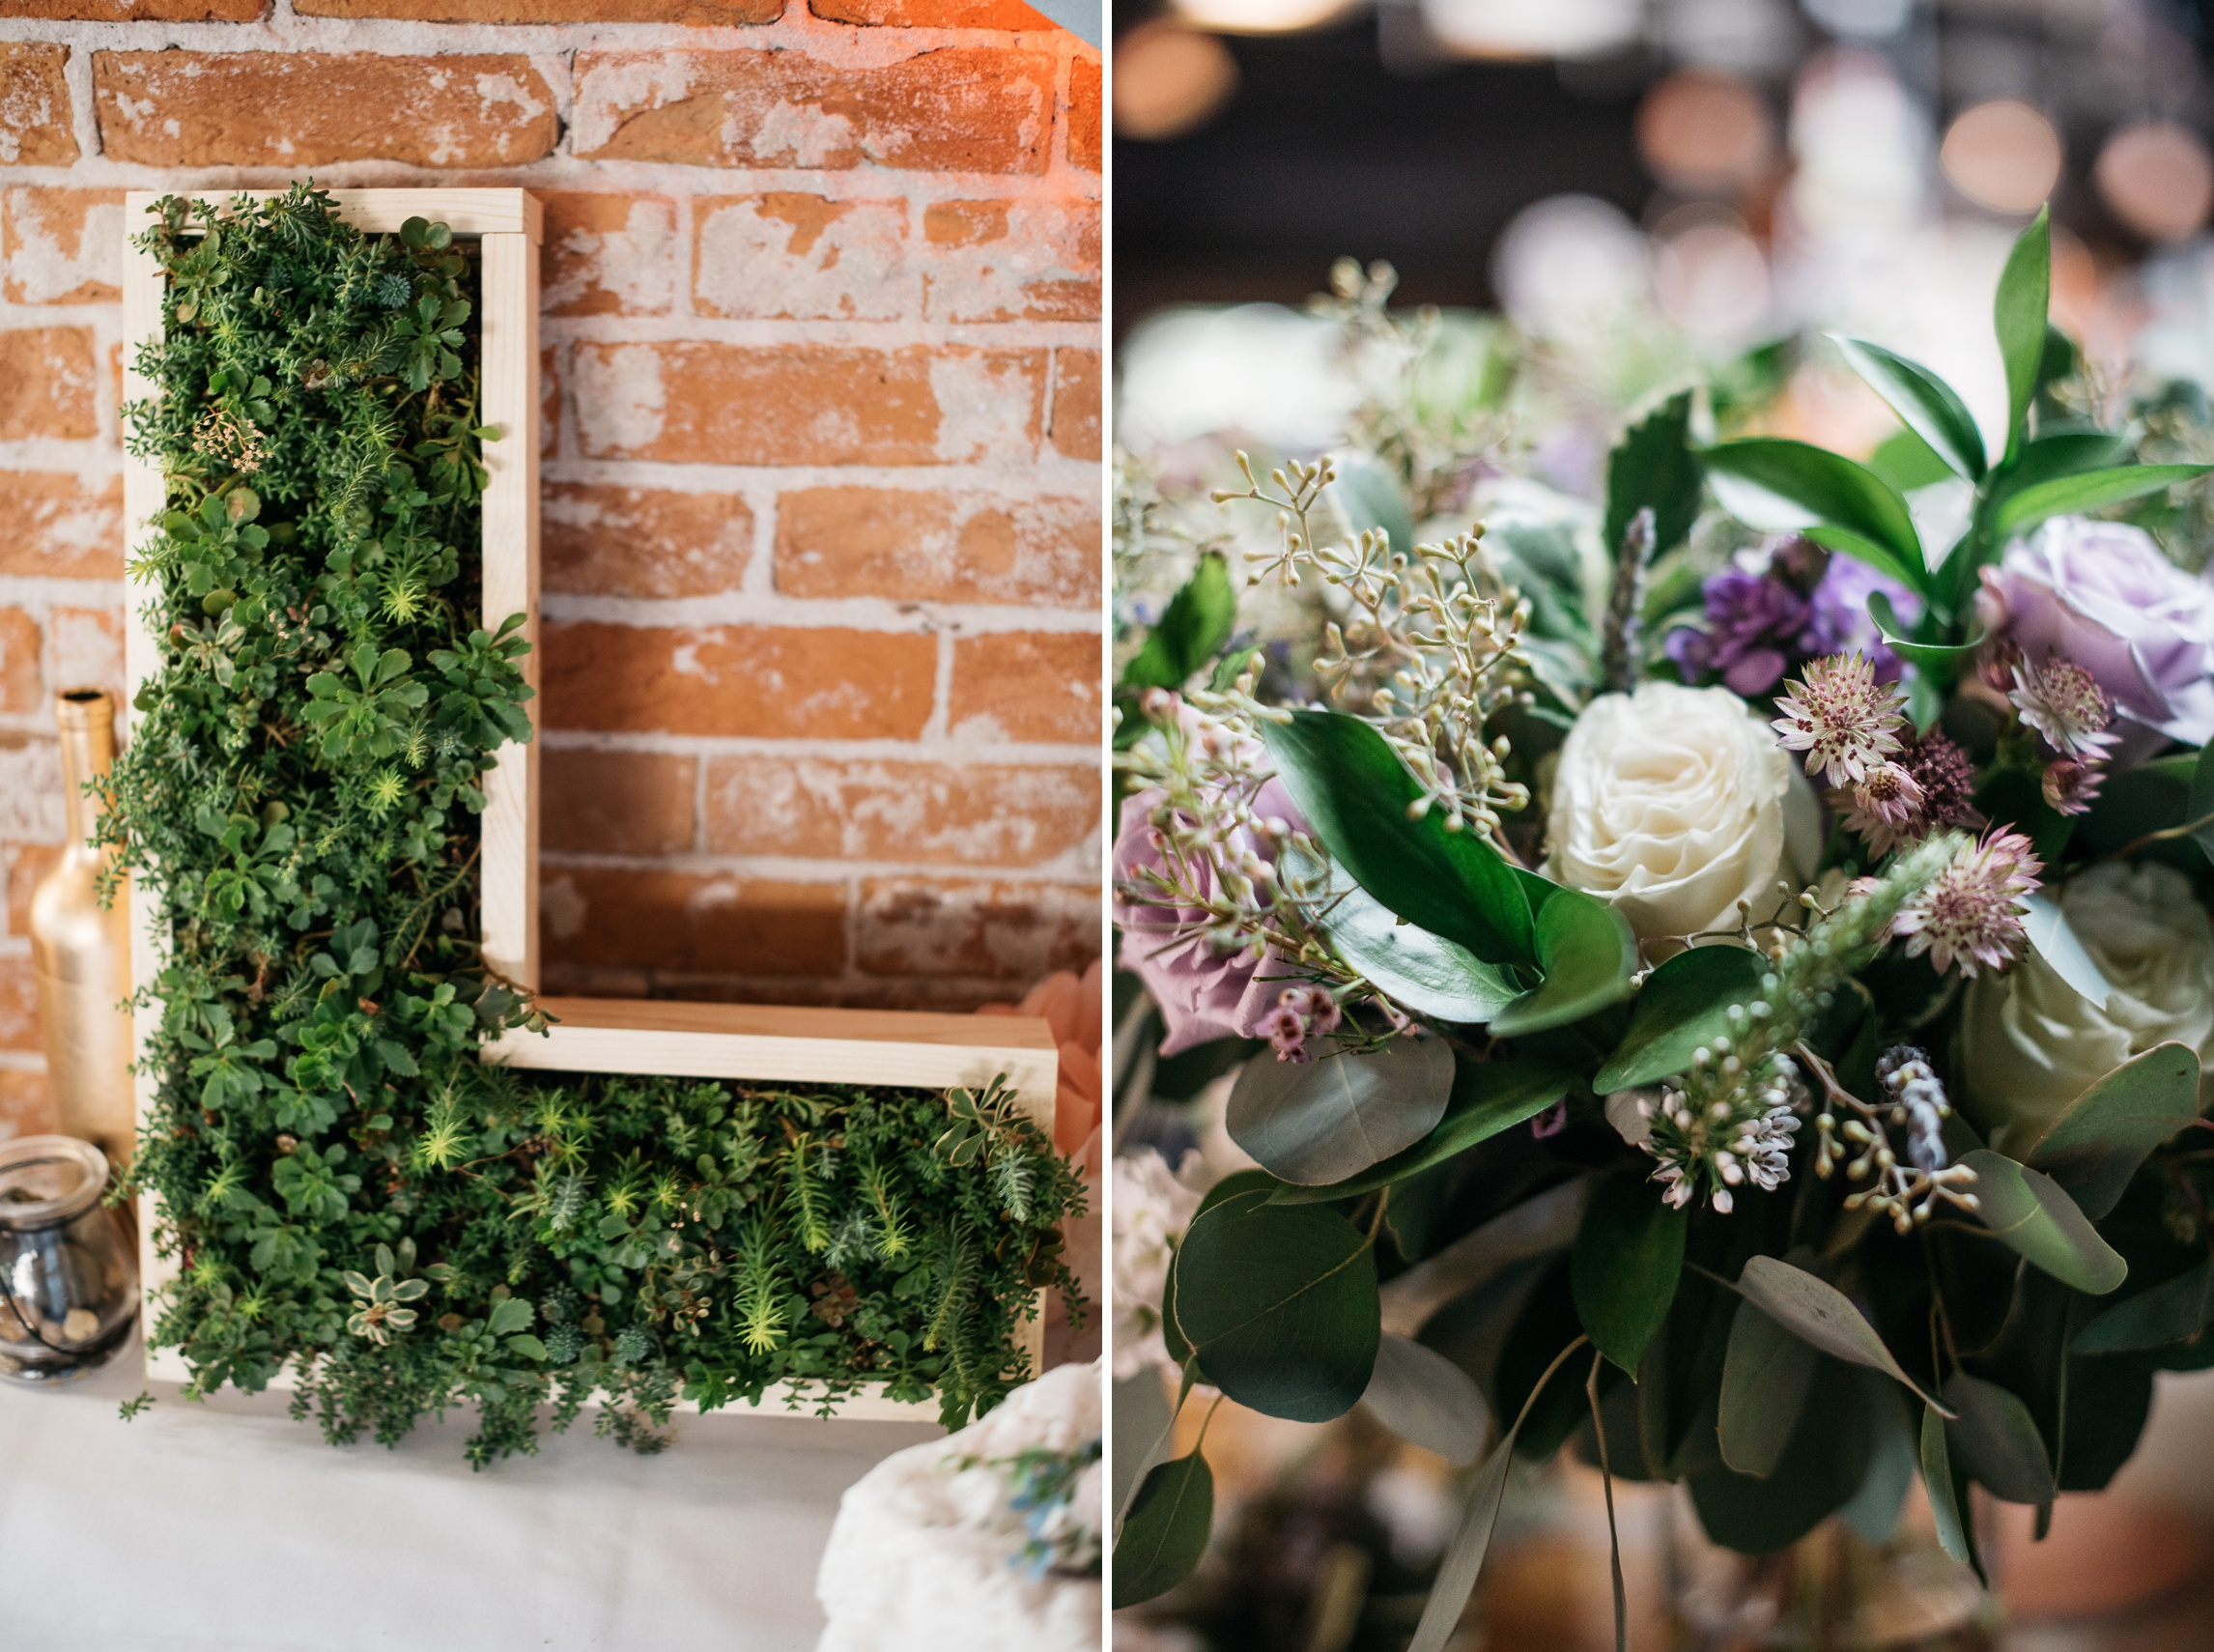 Succulents and floral arrangements at an outdoor Colorado wedding in Old Town Fort Collins. Wedding photography by Sonja Salzburg of Sonja K Photography.